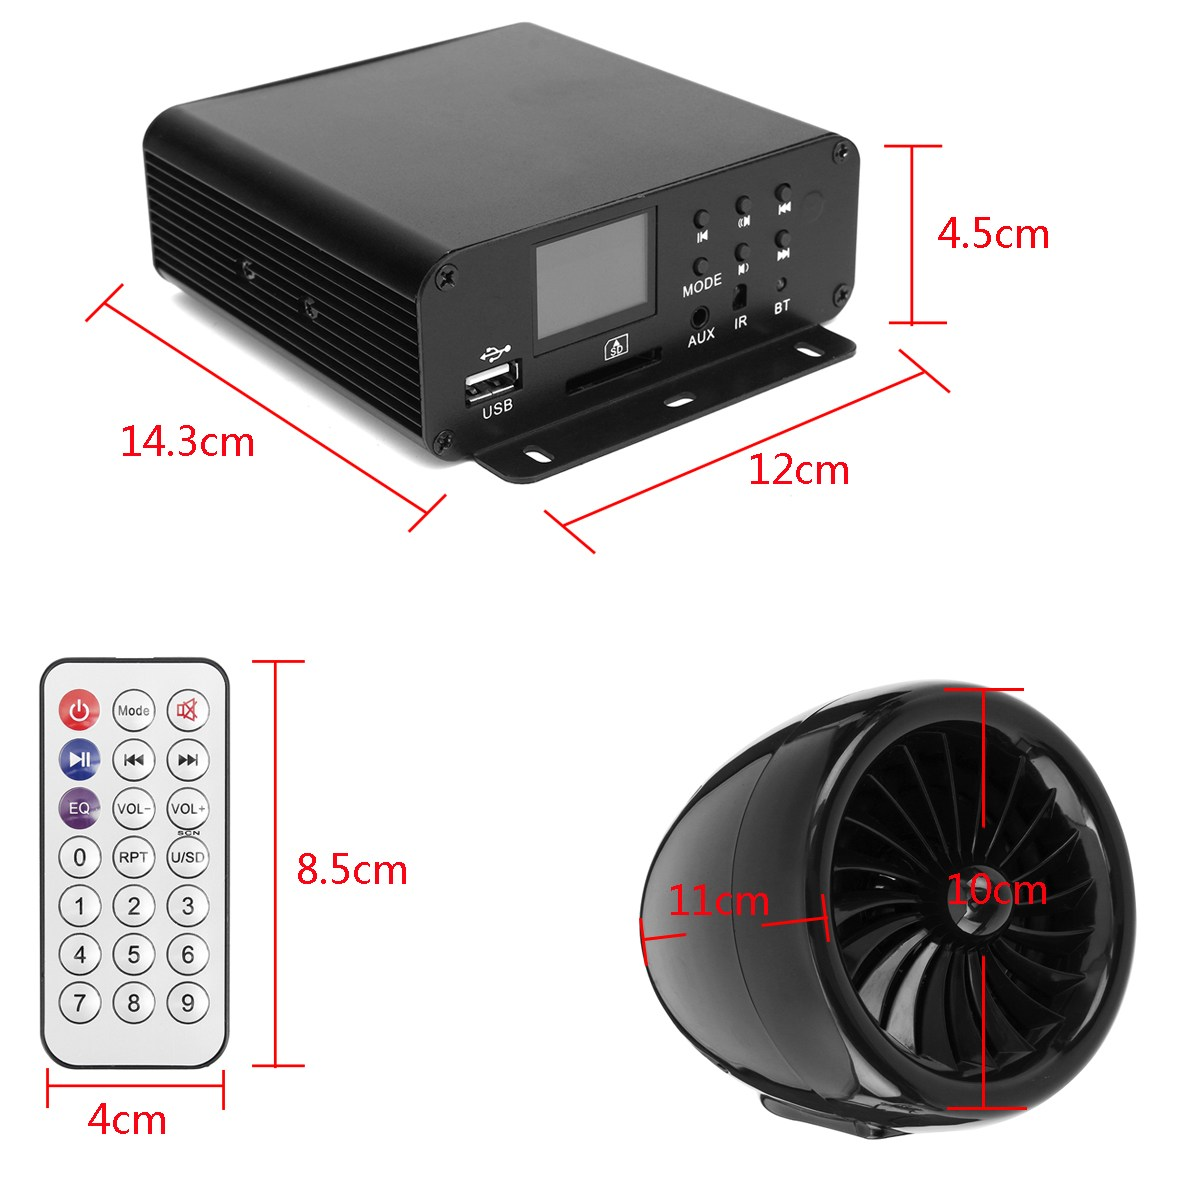 Mofaner 12v Lcd Motorbike Audio Bluetooth 4 Speakers Amplifier System Handlebar For Atv 1000w In Motorcycle From Automobiles Motorcycles